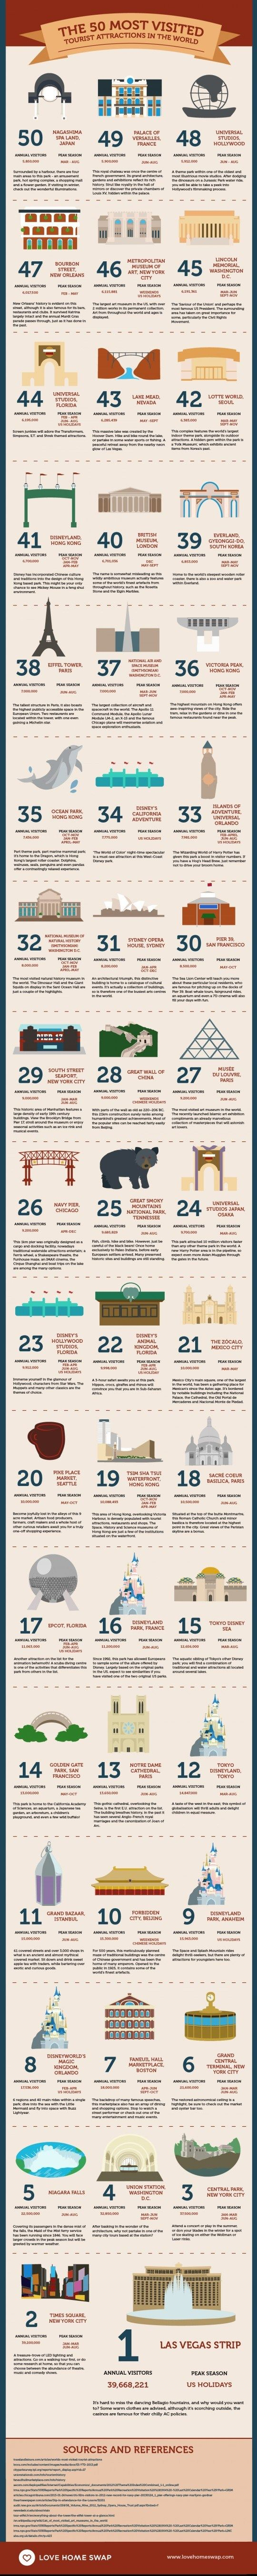 50 Most Visited Tourist Attractions in the World - Family Food And Travel